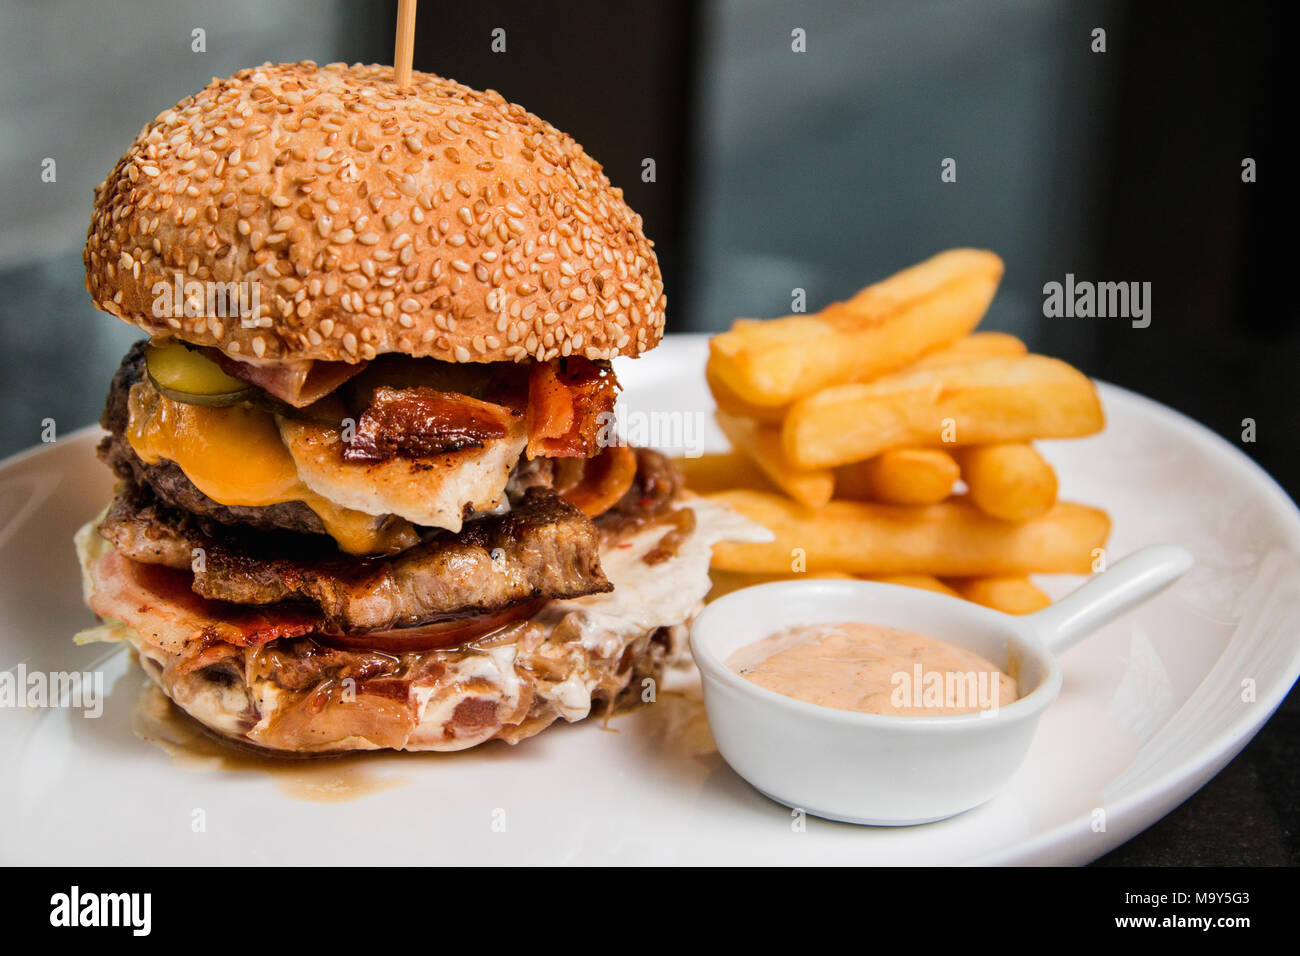 Close up of a delicious burger with sauce and fries - Stock Image